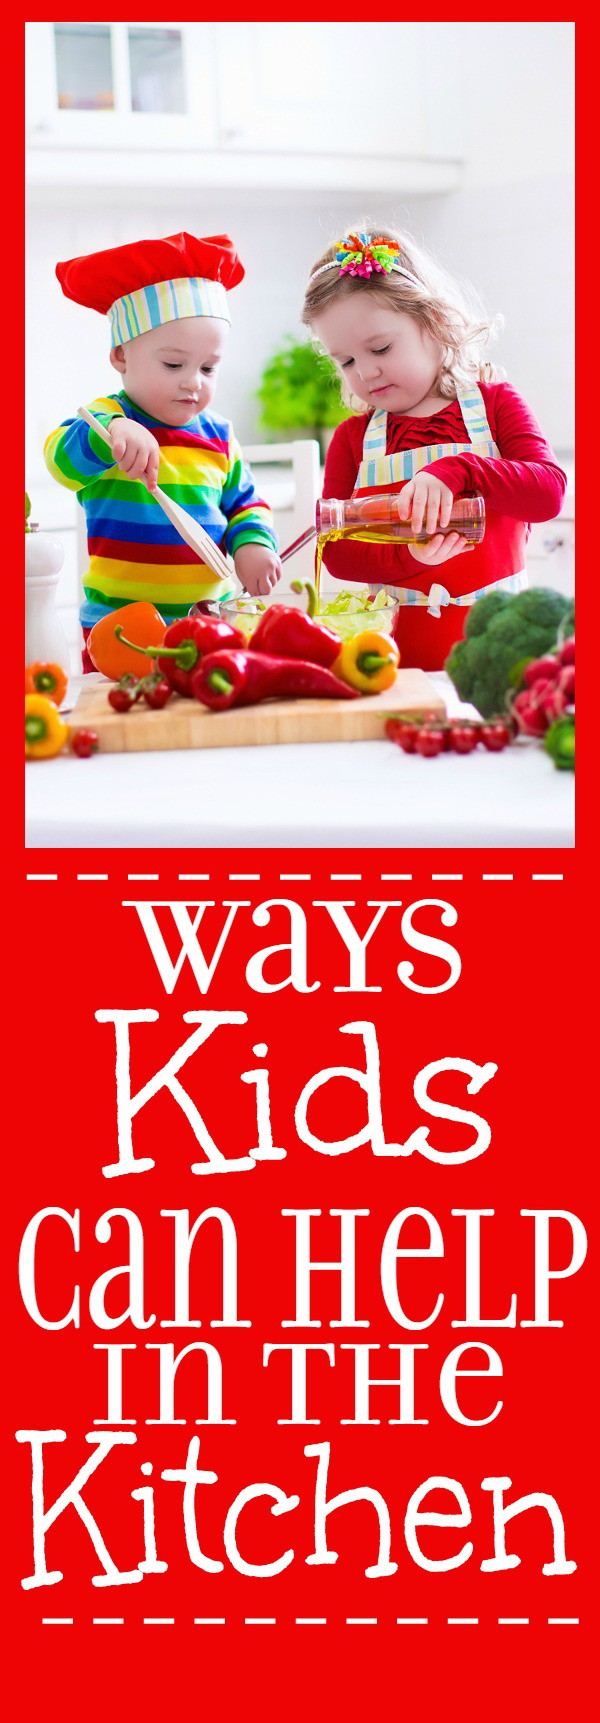 10 Tasks Kids can Help with in the Kitchen - Kids can help in the kitchen too! Get the kids involved, busy, and cooking with these 10 tasks kids can help with in the kitchen. | parenting